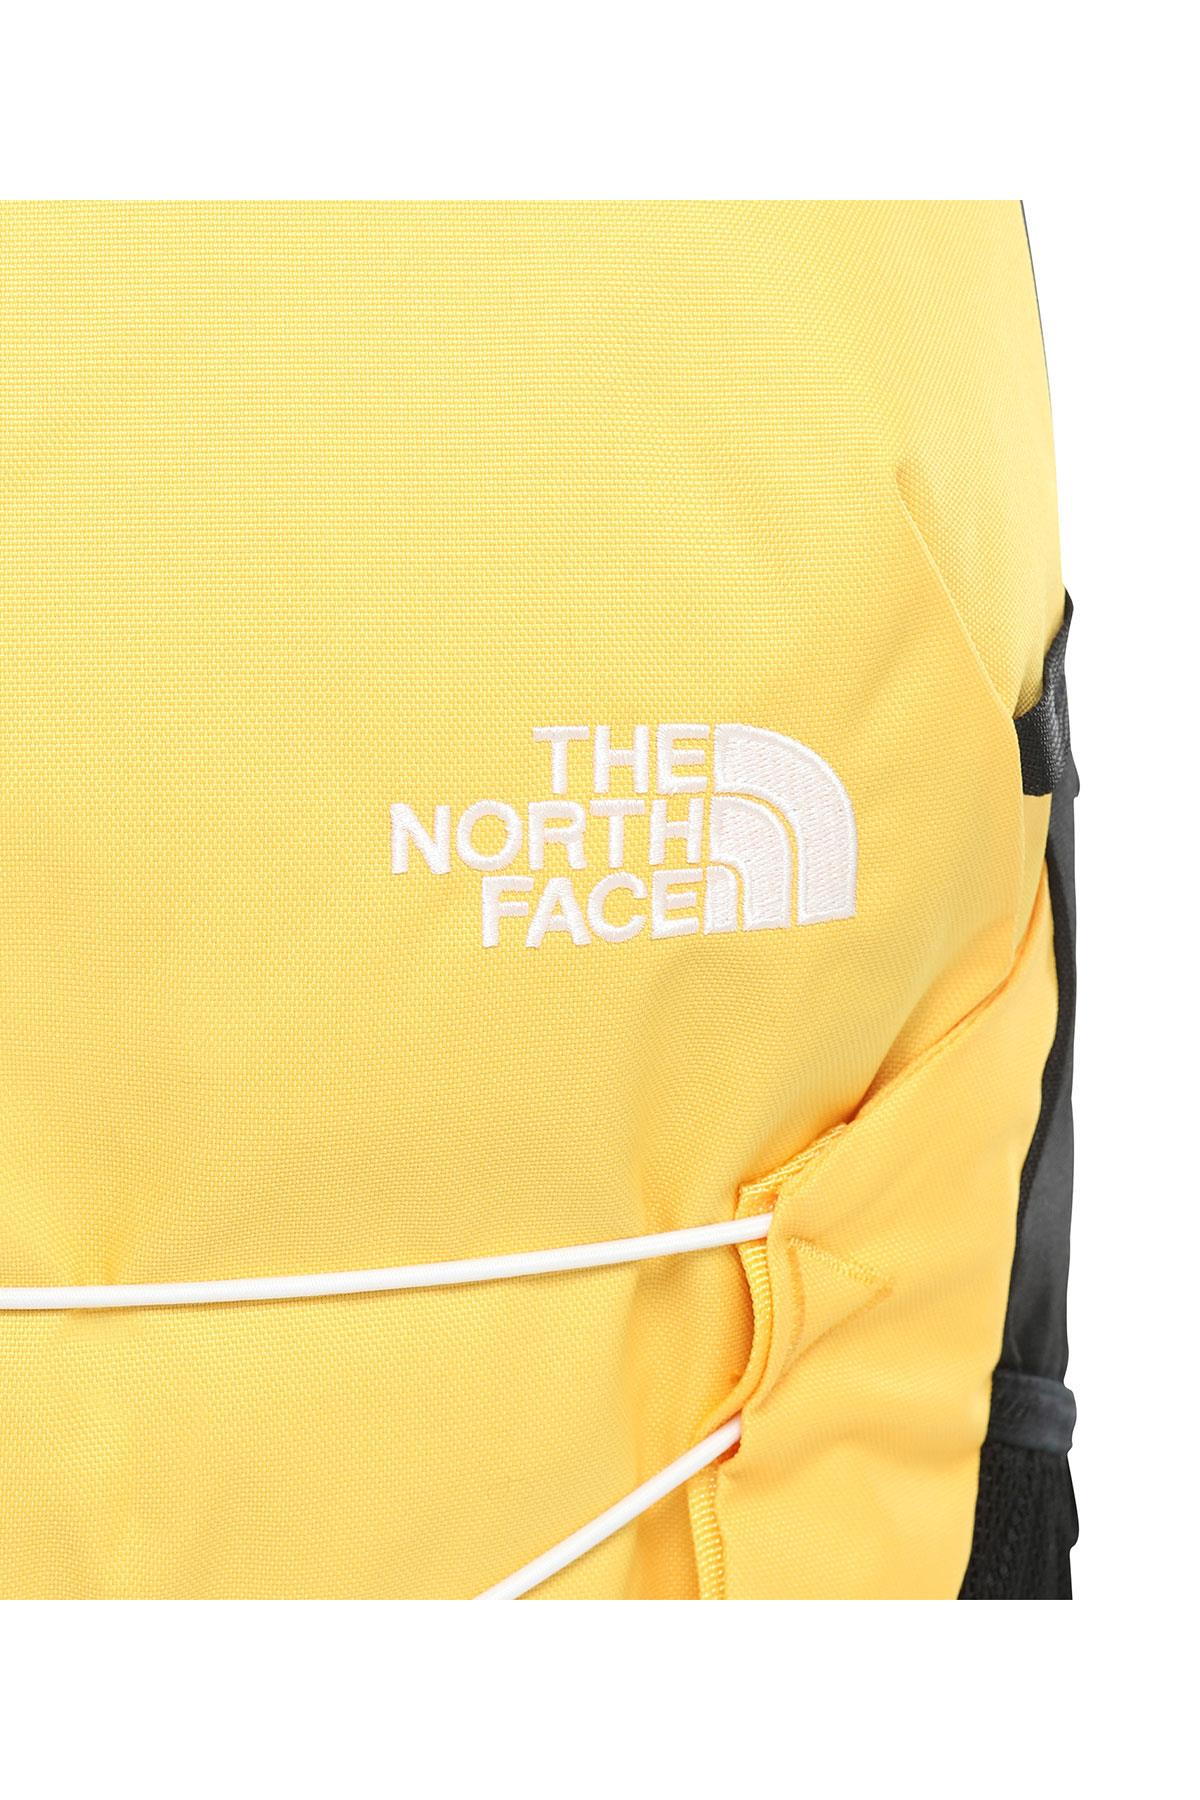 The North Face Jestorealis Nf0A3Ky7Lr01